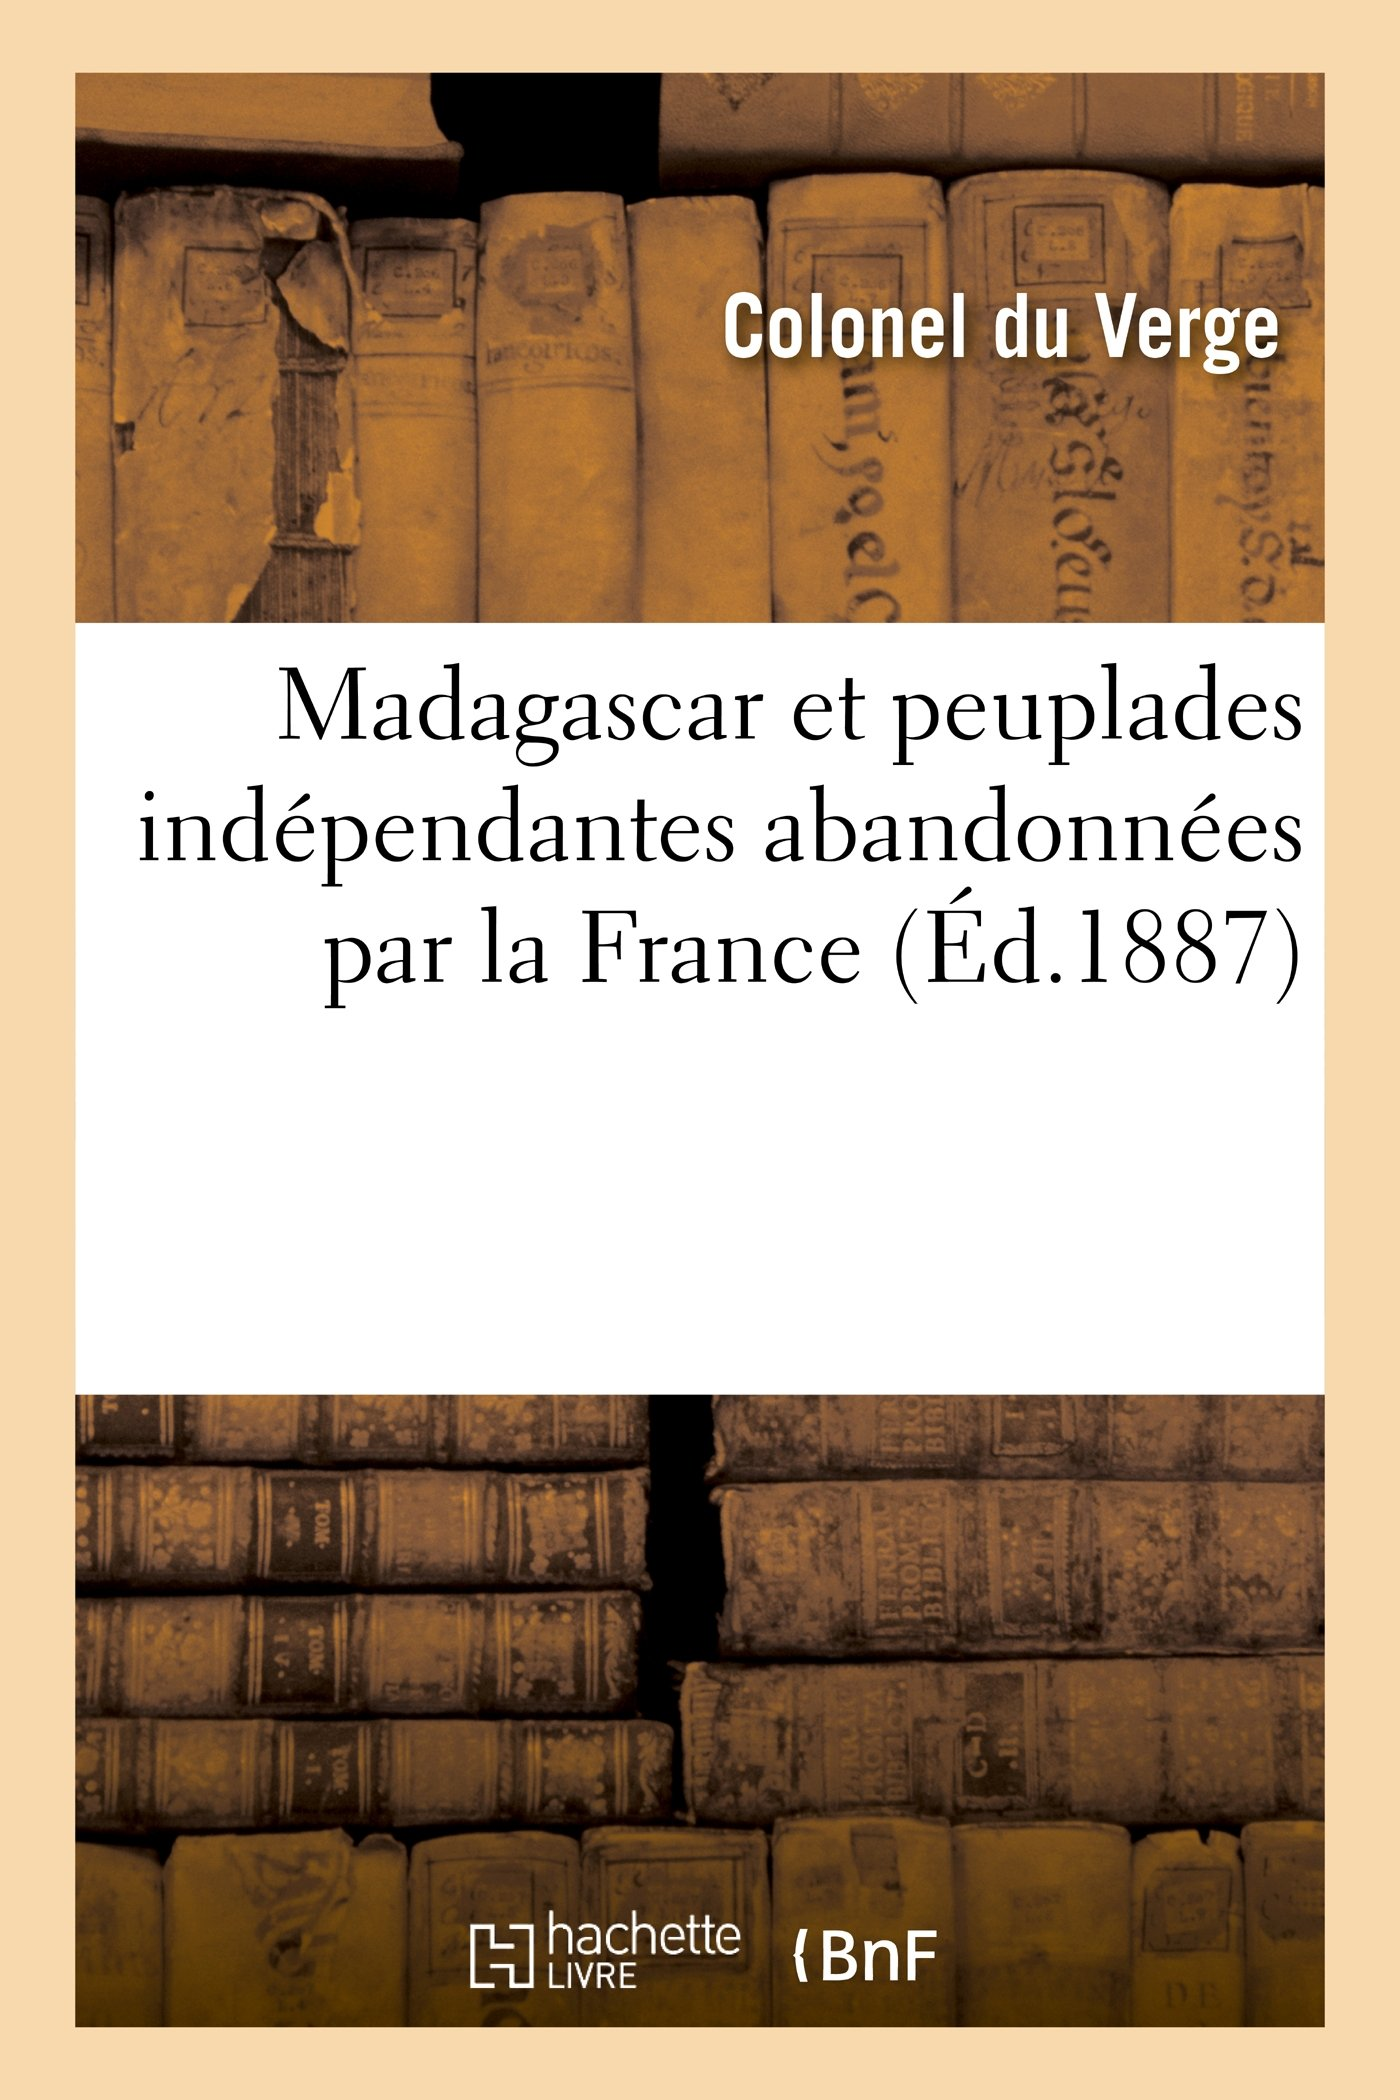 Madagascar Et Peuplades Independantes Abandonnees Par La France (Histoire) (French Edition)